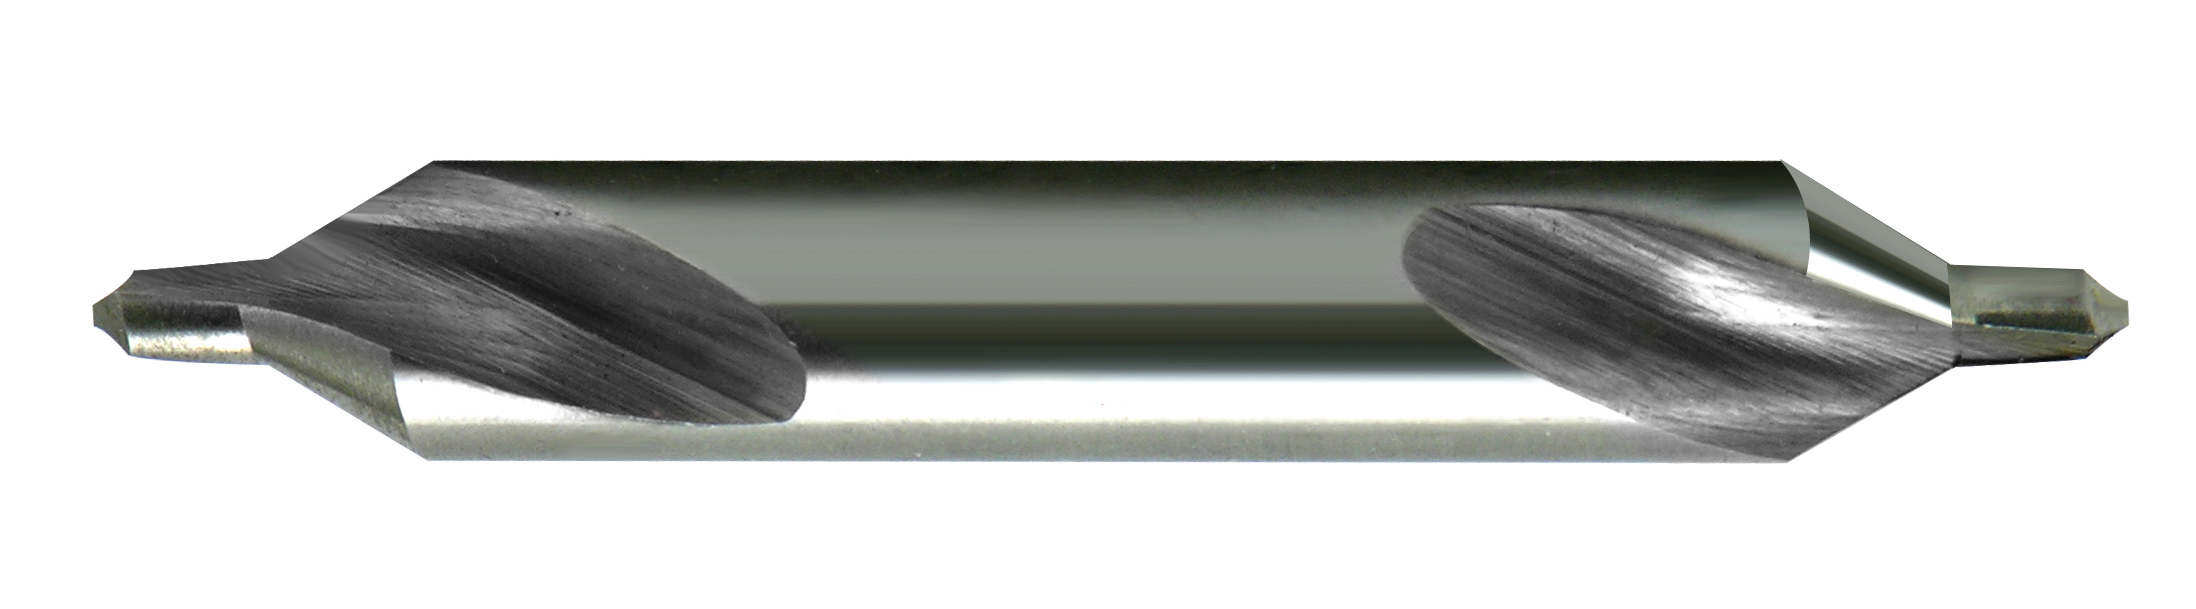 8 Combined Drill And Countersink  Hss  60 Degree- Uncoated – 11605